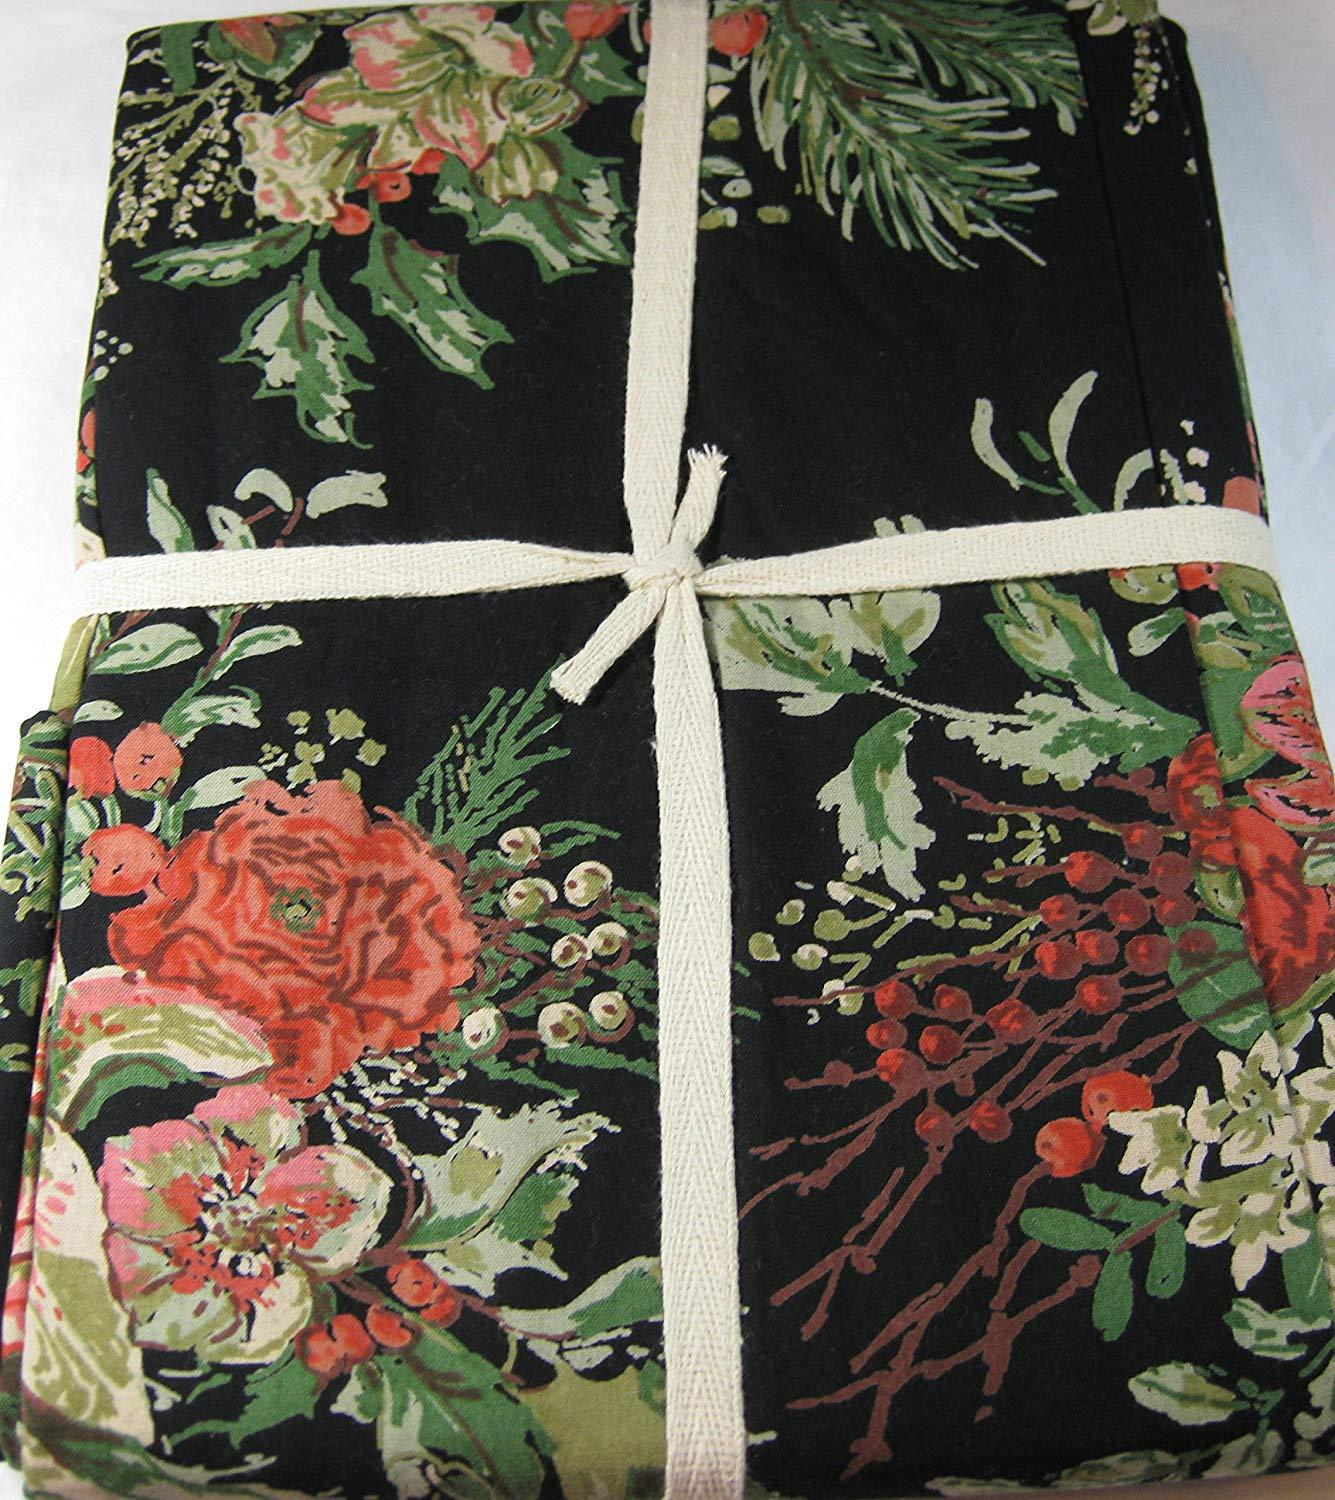 "April Cornell Vibrant Floral on Black Cotton Tablecloth 70"" Round"